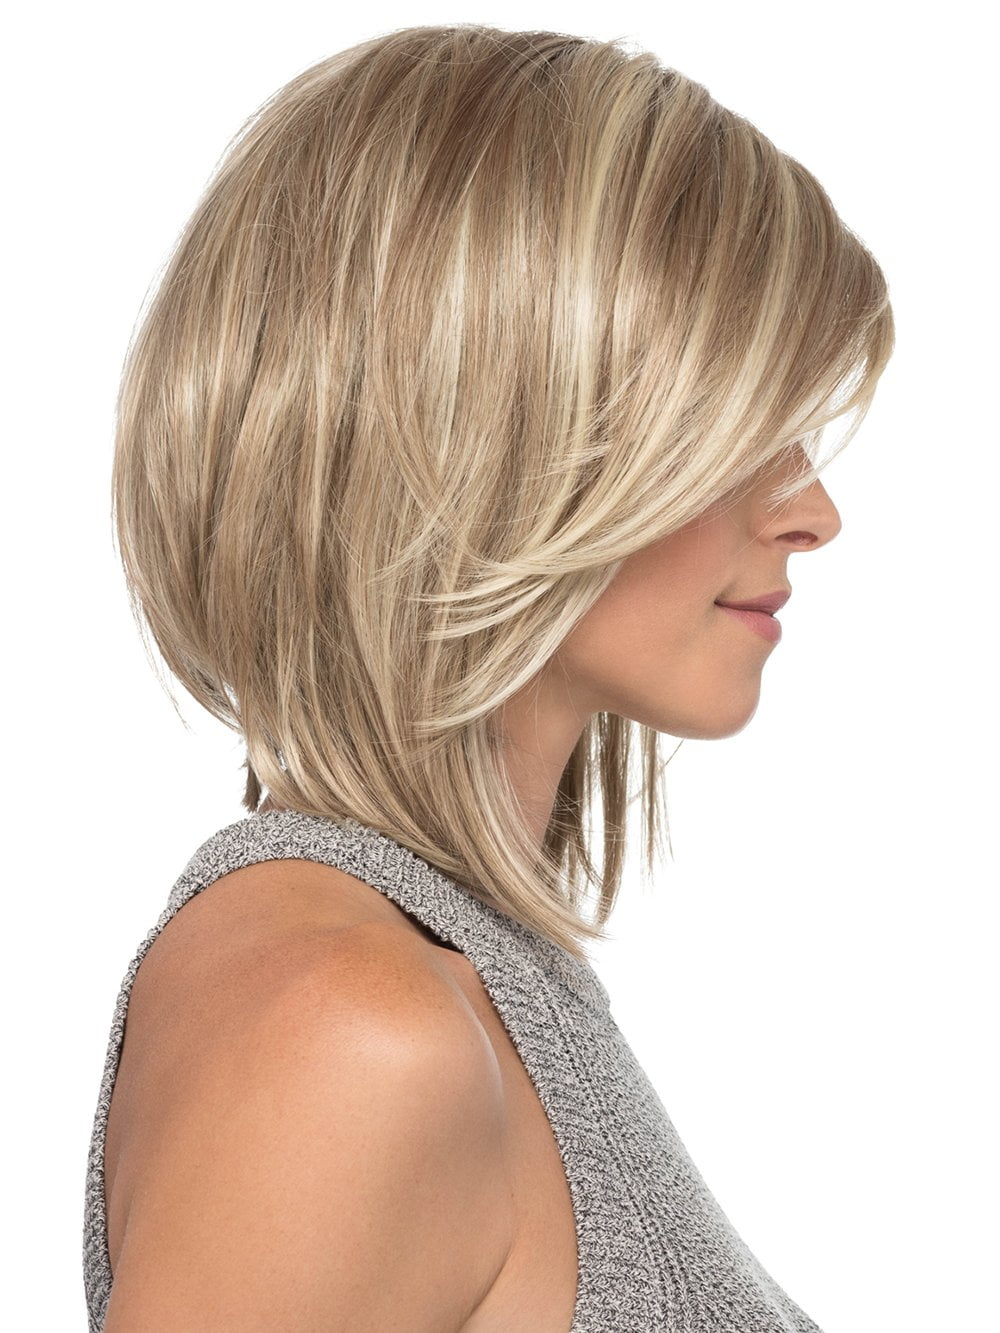 Her slightly angled layers and flowing side bangs make this shoulder length style simple and sleek for a perfect evening